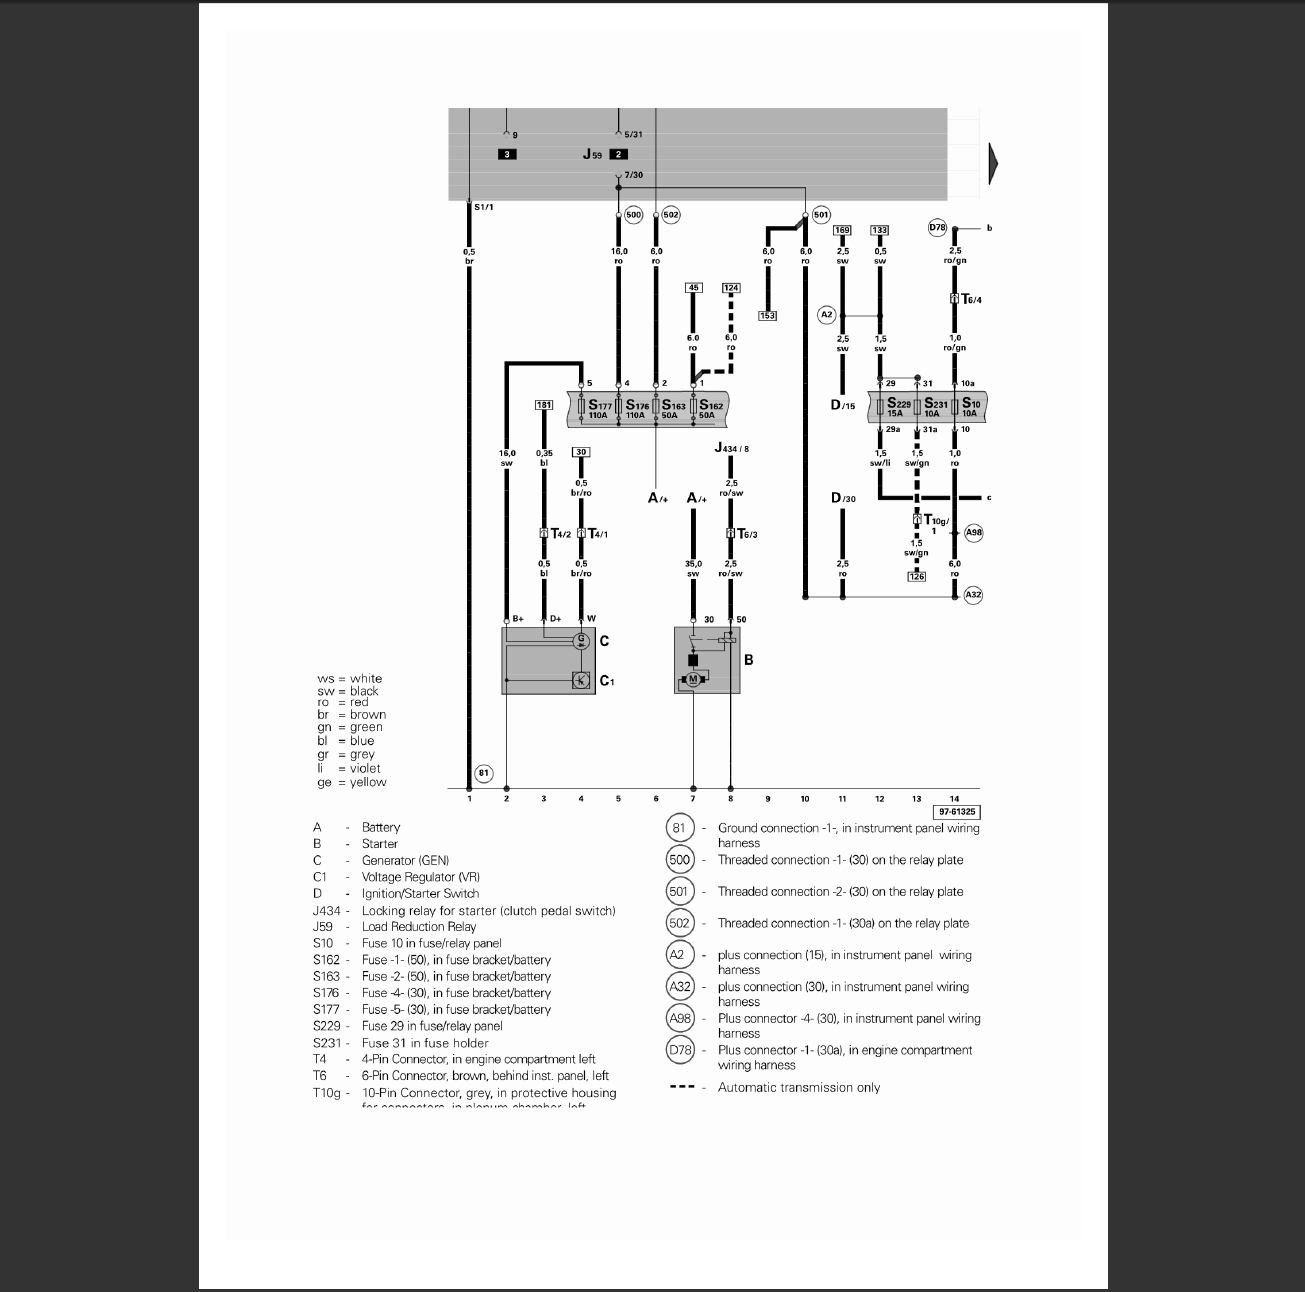 Does Anyone Have The Electrical Diagram For A 2001 Vw Beetle